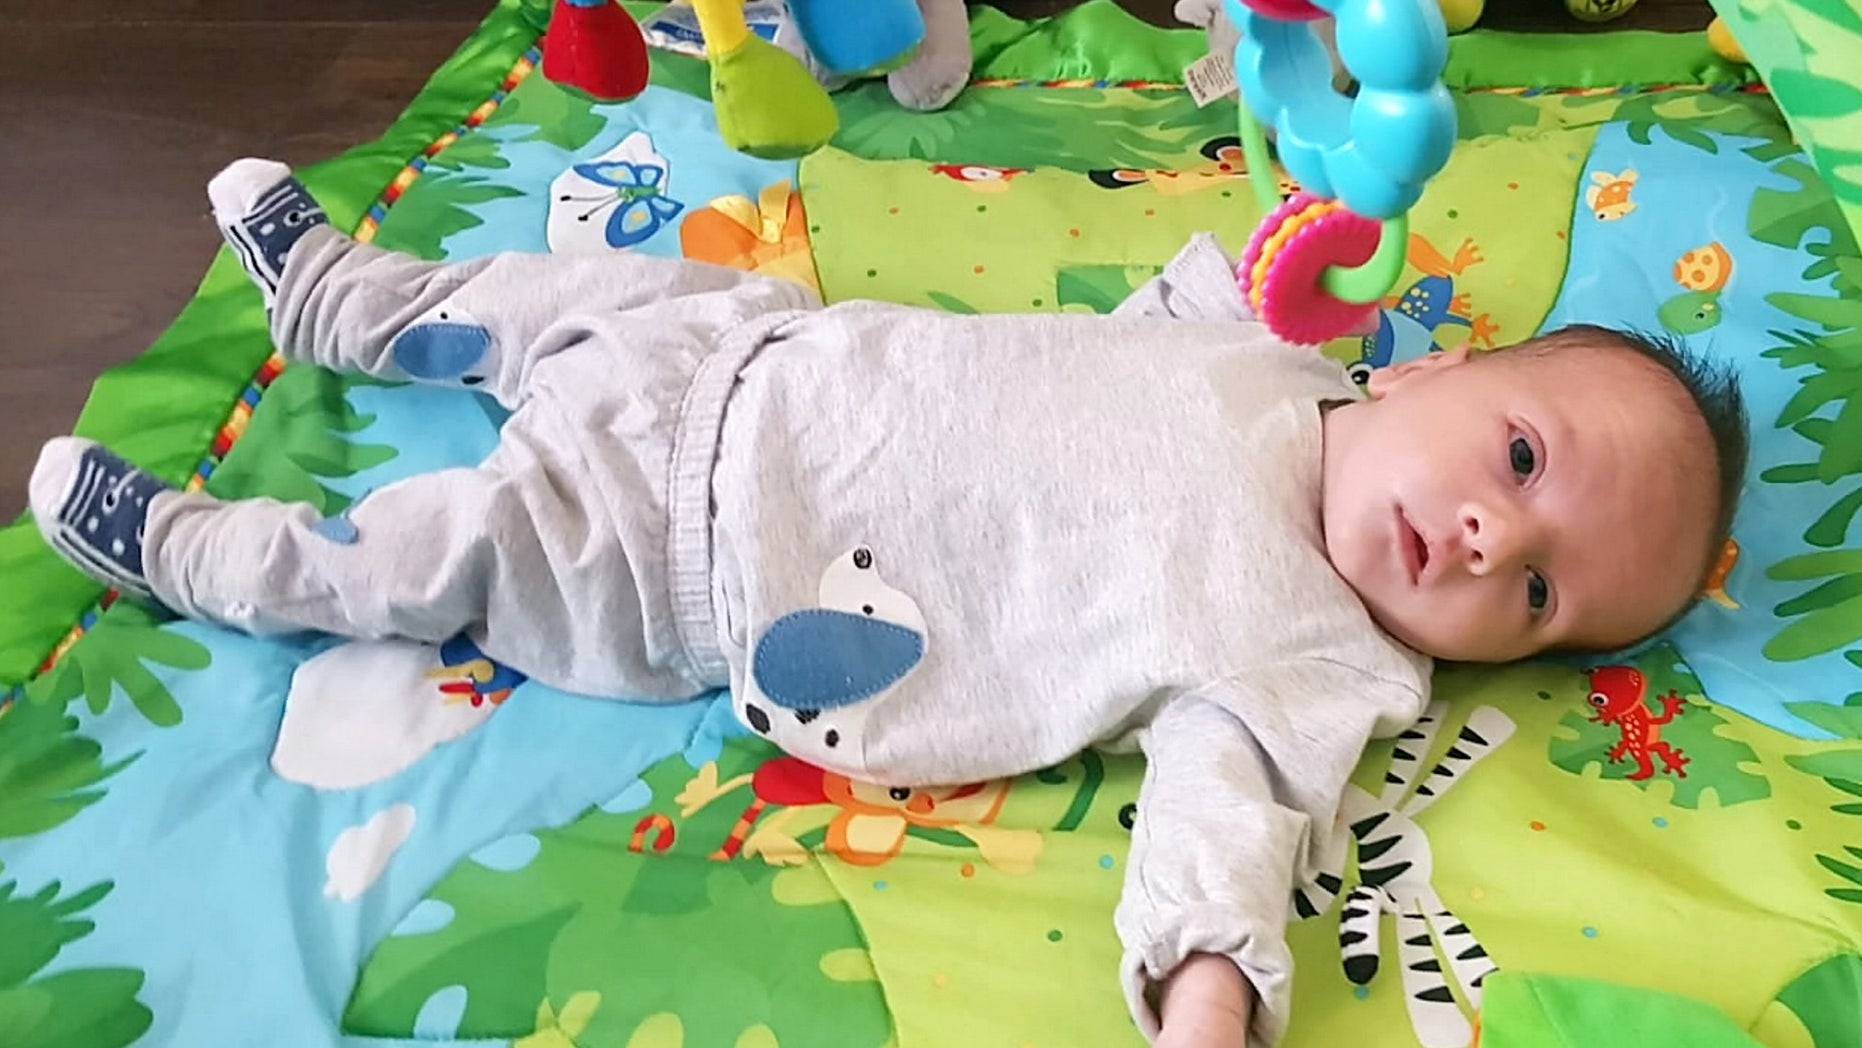 A heartbroken mom has warned parents to be vigilant after her 6-week-old son died just four days after being struck down by meningitis.